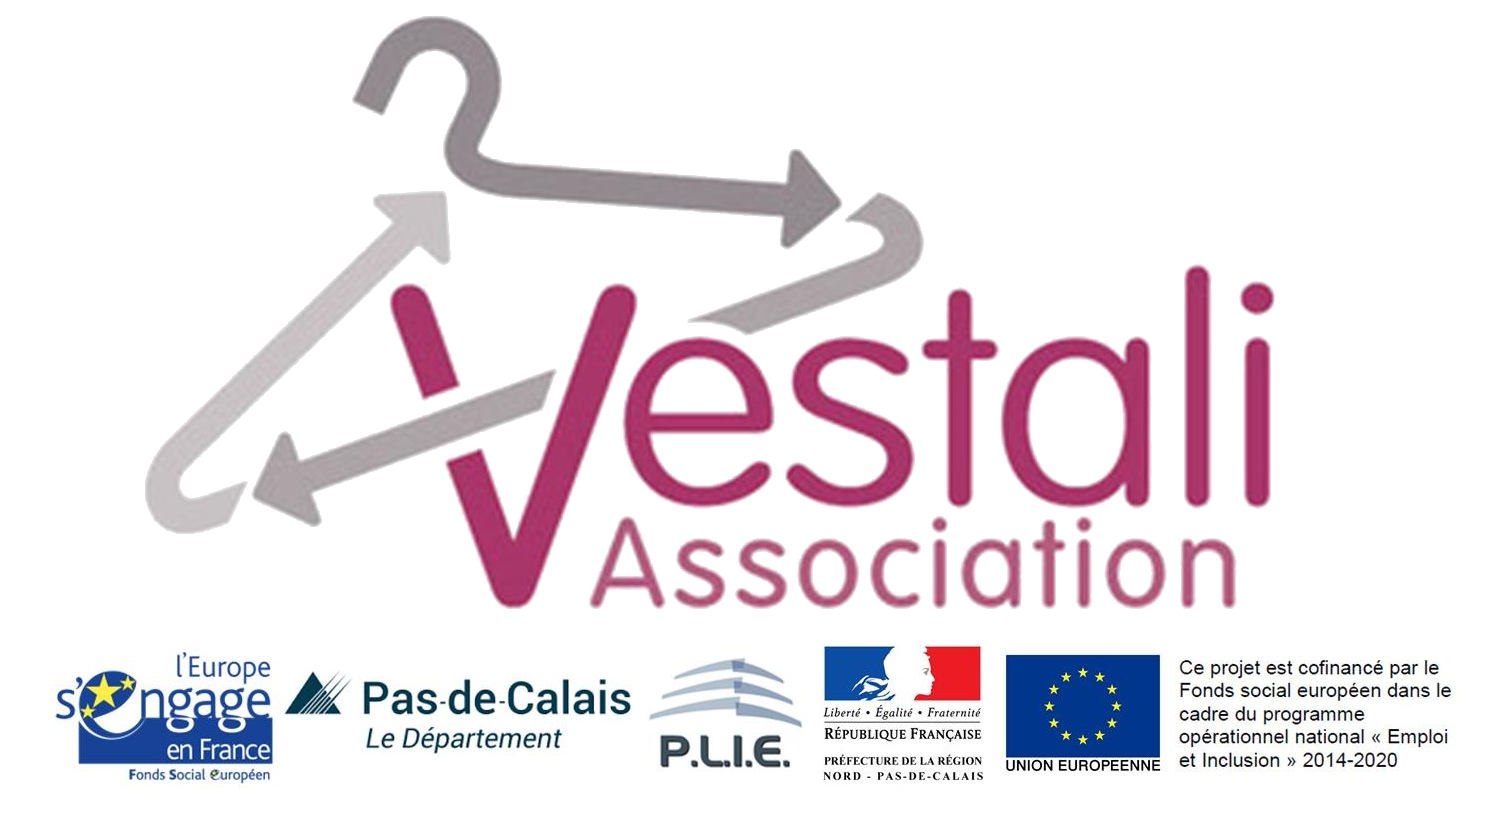 retouche  repassage  u2013 association vestali